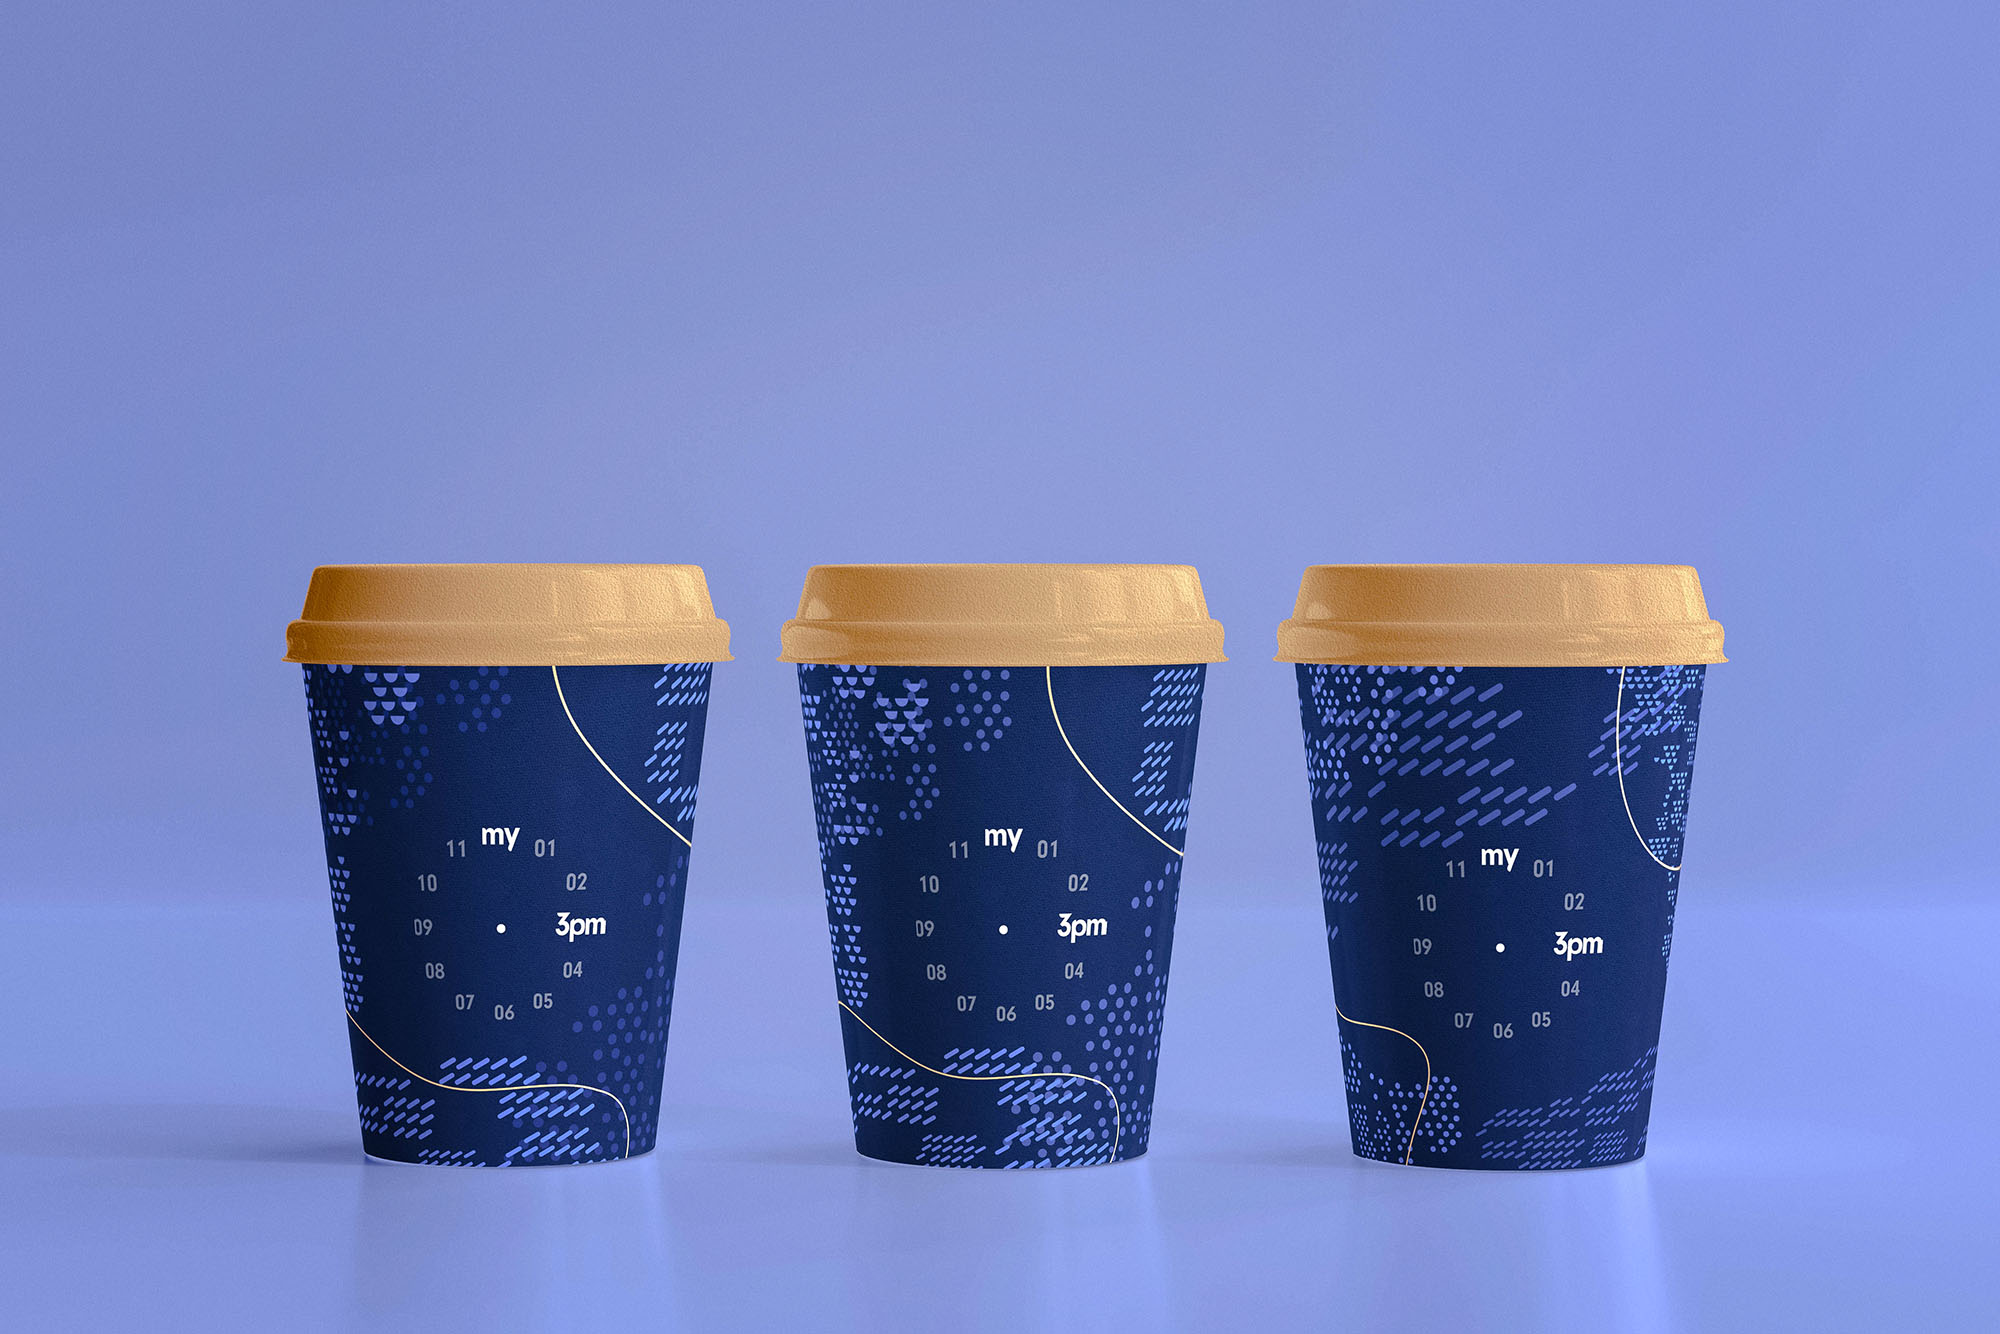 Development of Identity for a Korean Coffeehouse Chain